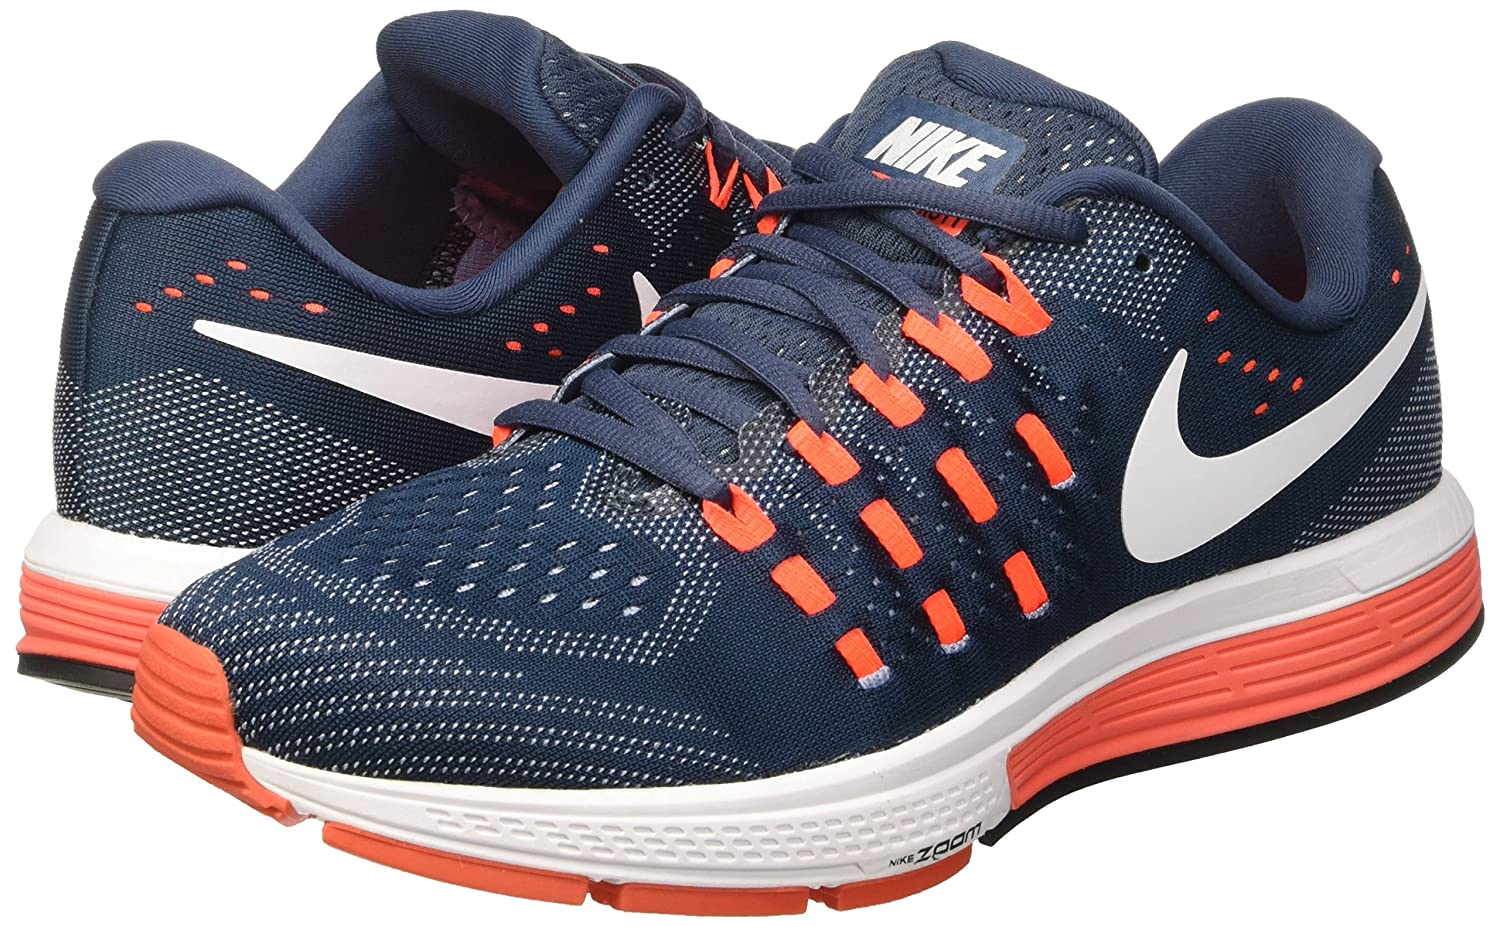 hot sales 7a965 f48db Amazon.com  Nike Men s Air Zoom Vomero 11 Running Shoes  Shoes